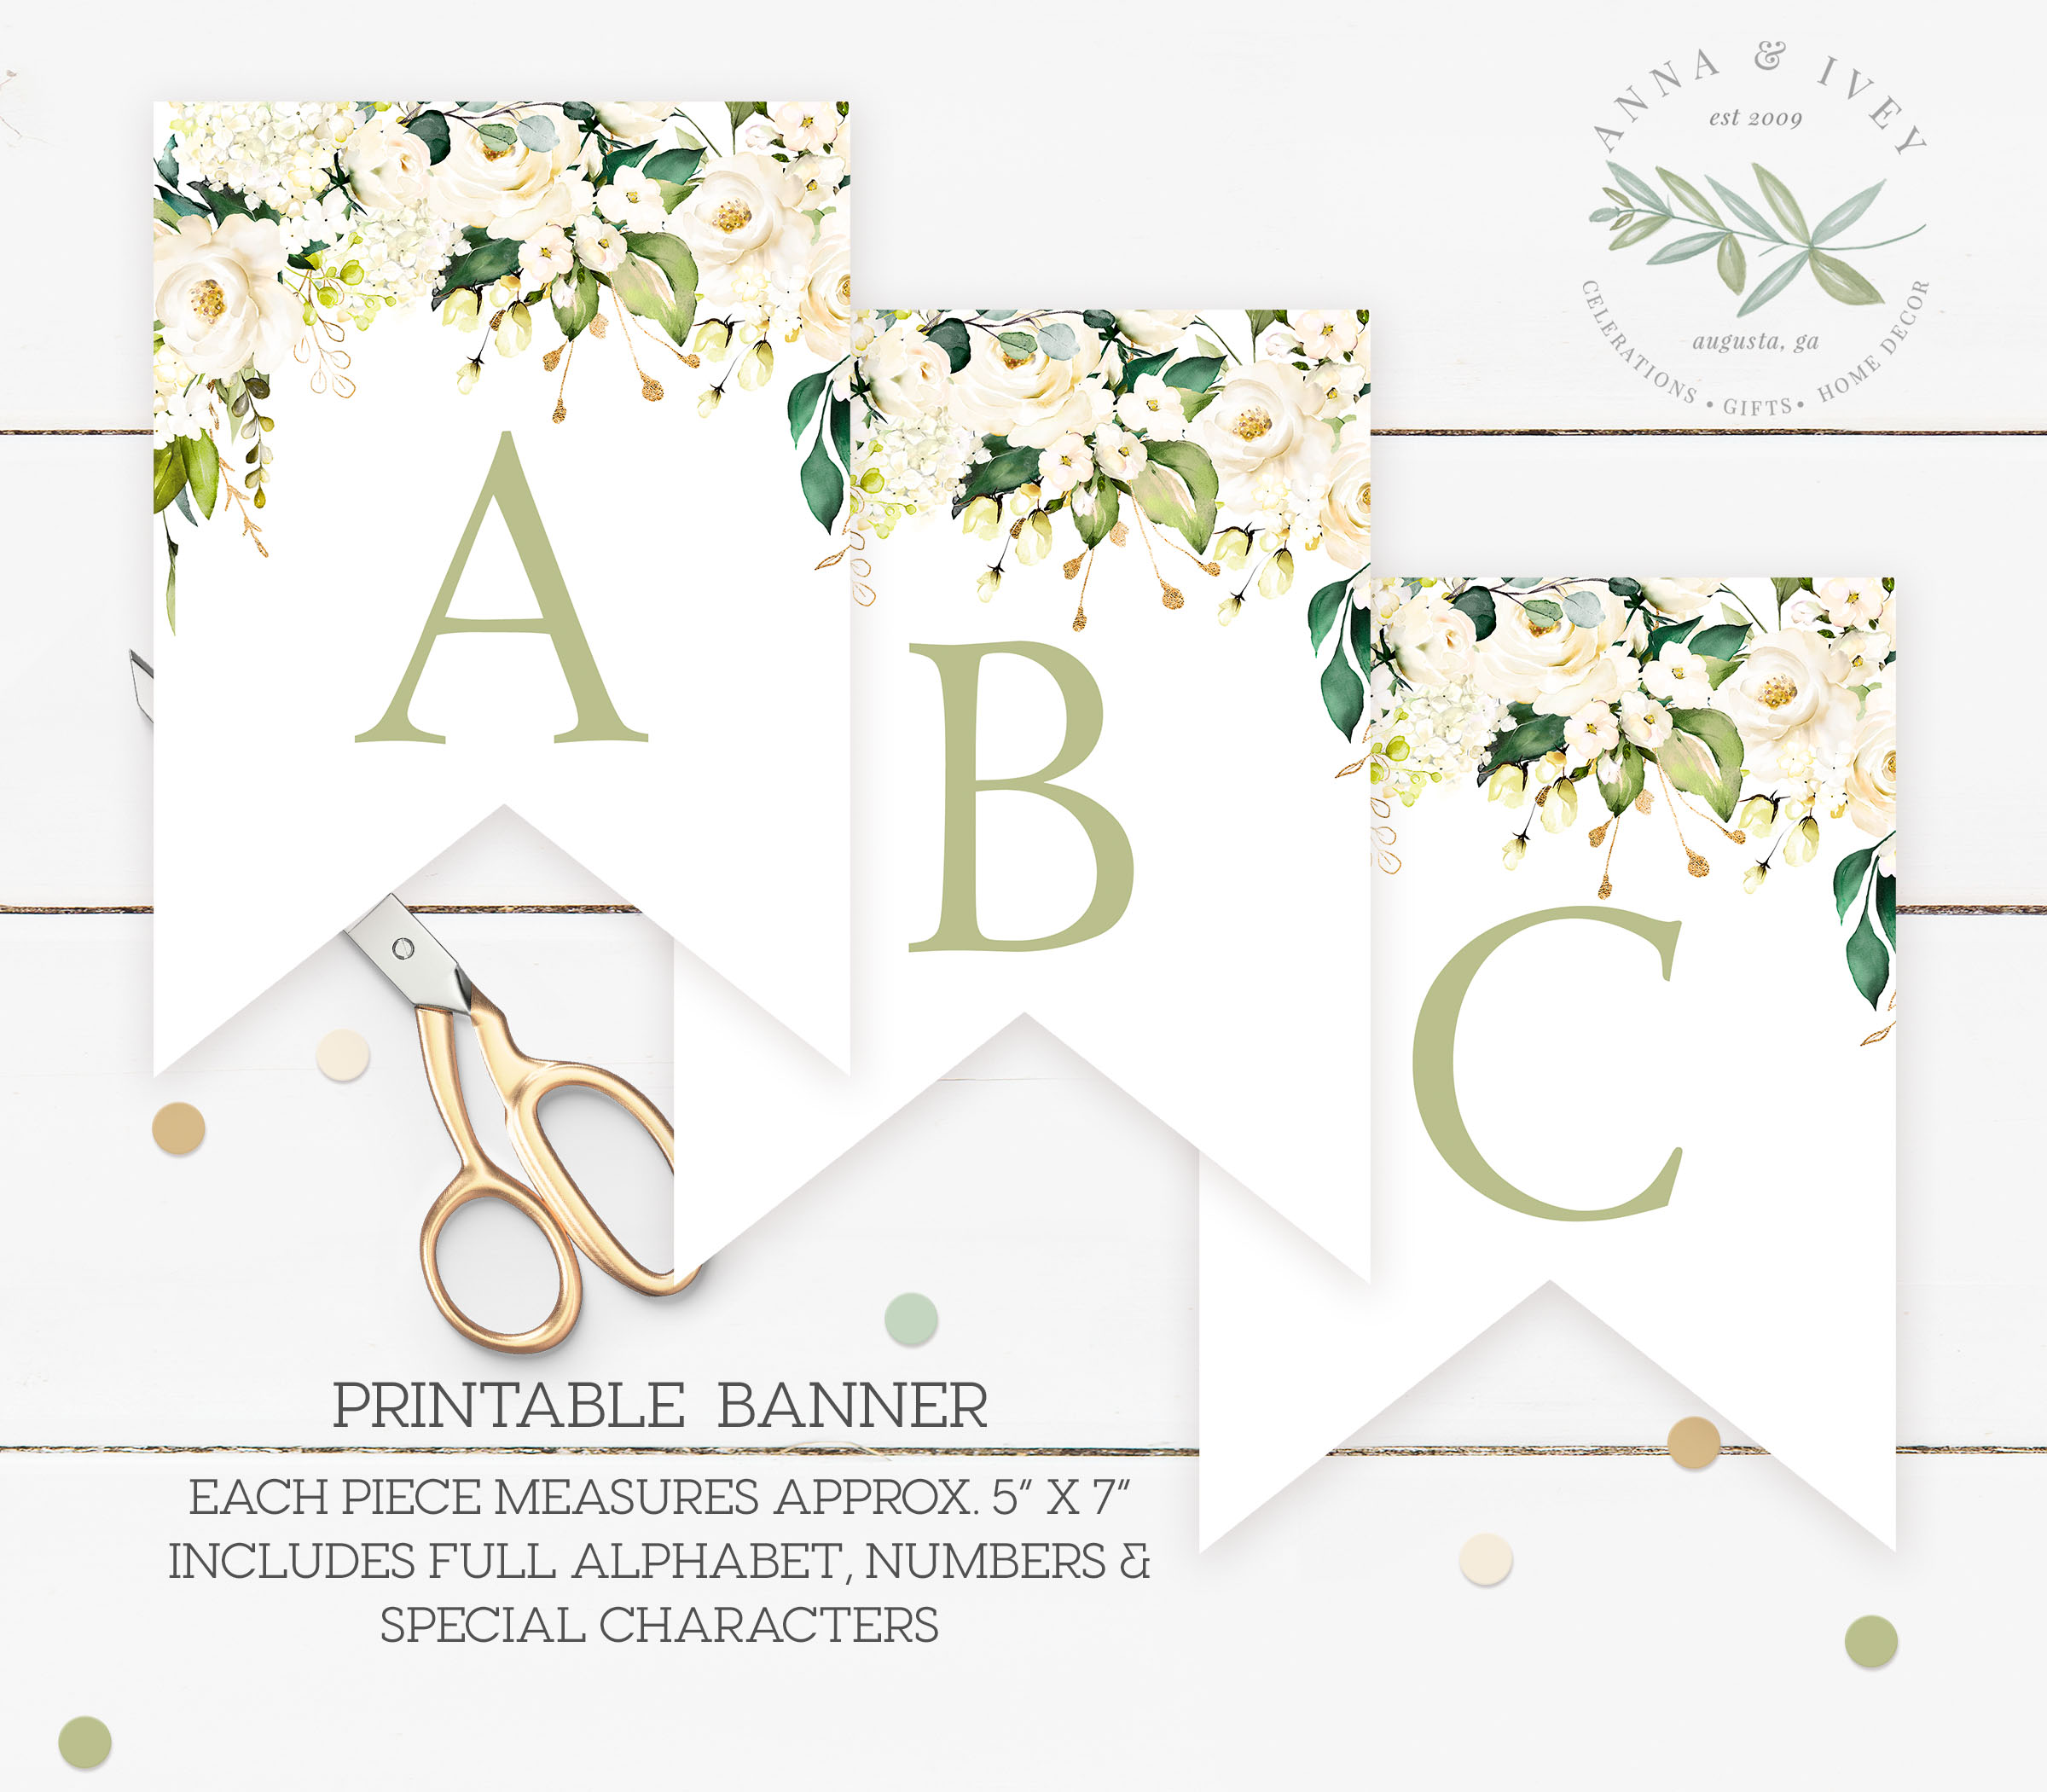 photograph regarding Banner Printable known as Printable White Floral Banner